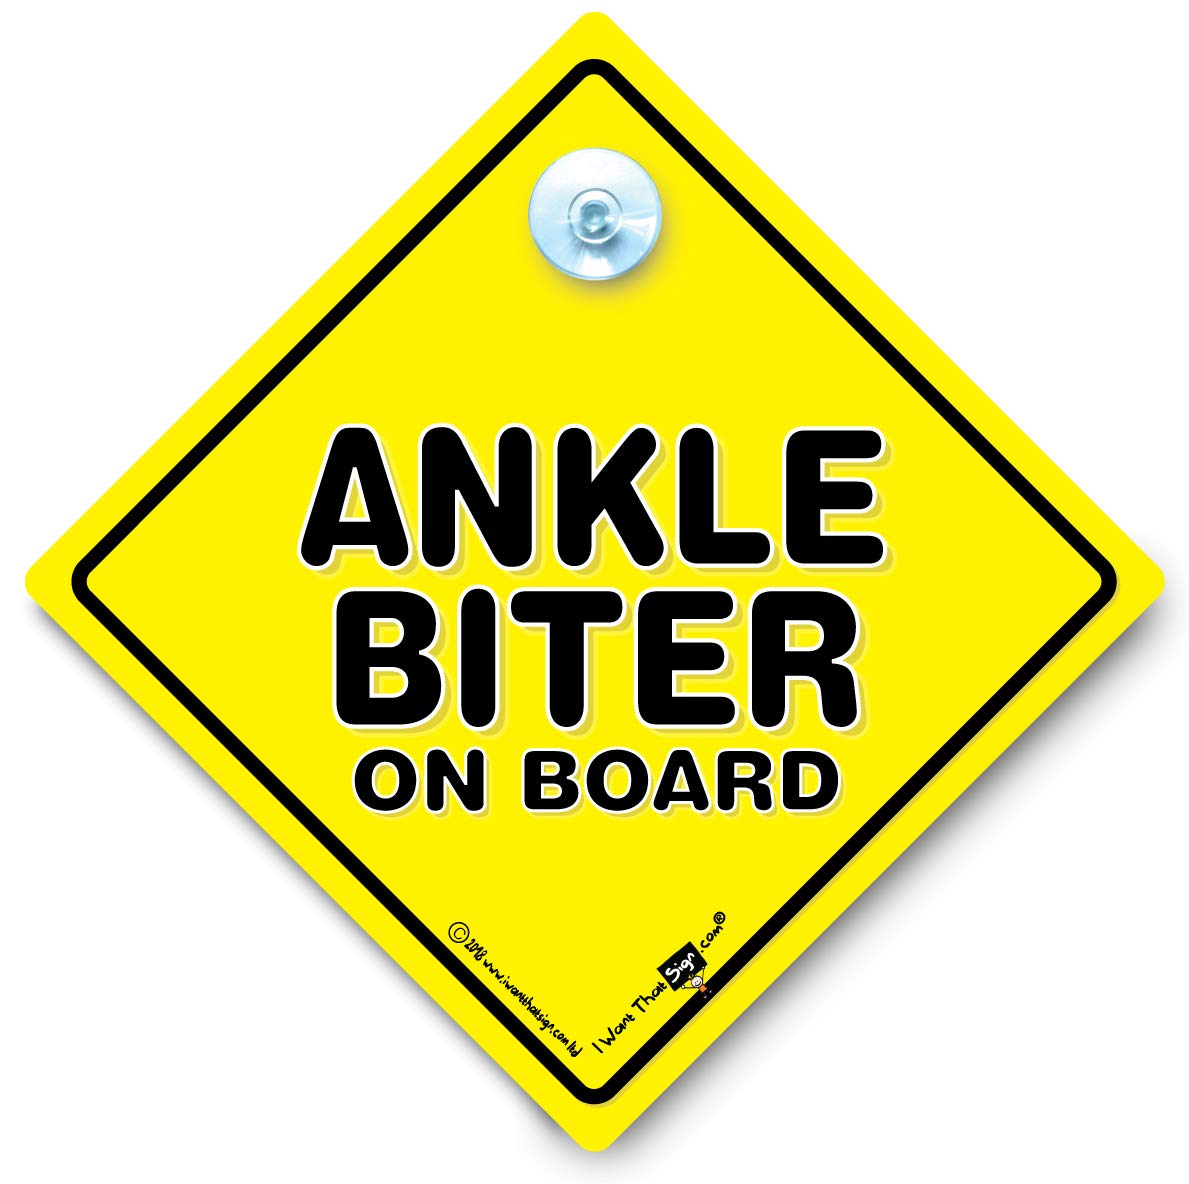 Ankle Biter On Board Car Sign, Baby on Board Sign, Suction Cup Car Sign, Car Window Sign, Decal, Funny Car Sign, Joke Car Sign iwantthatsign.com